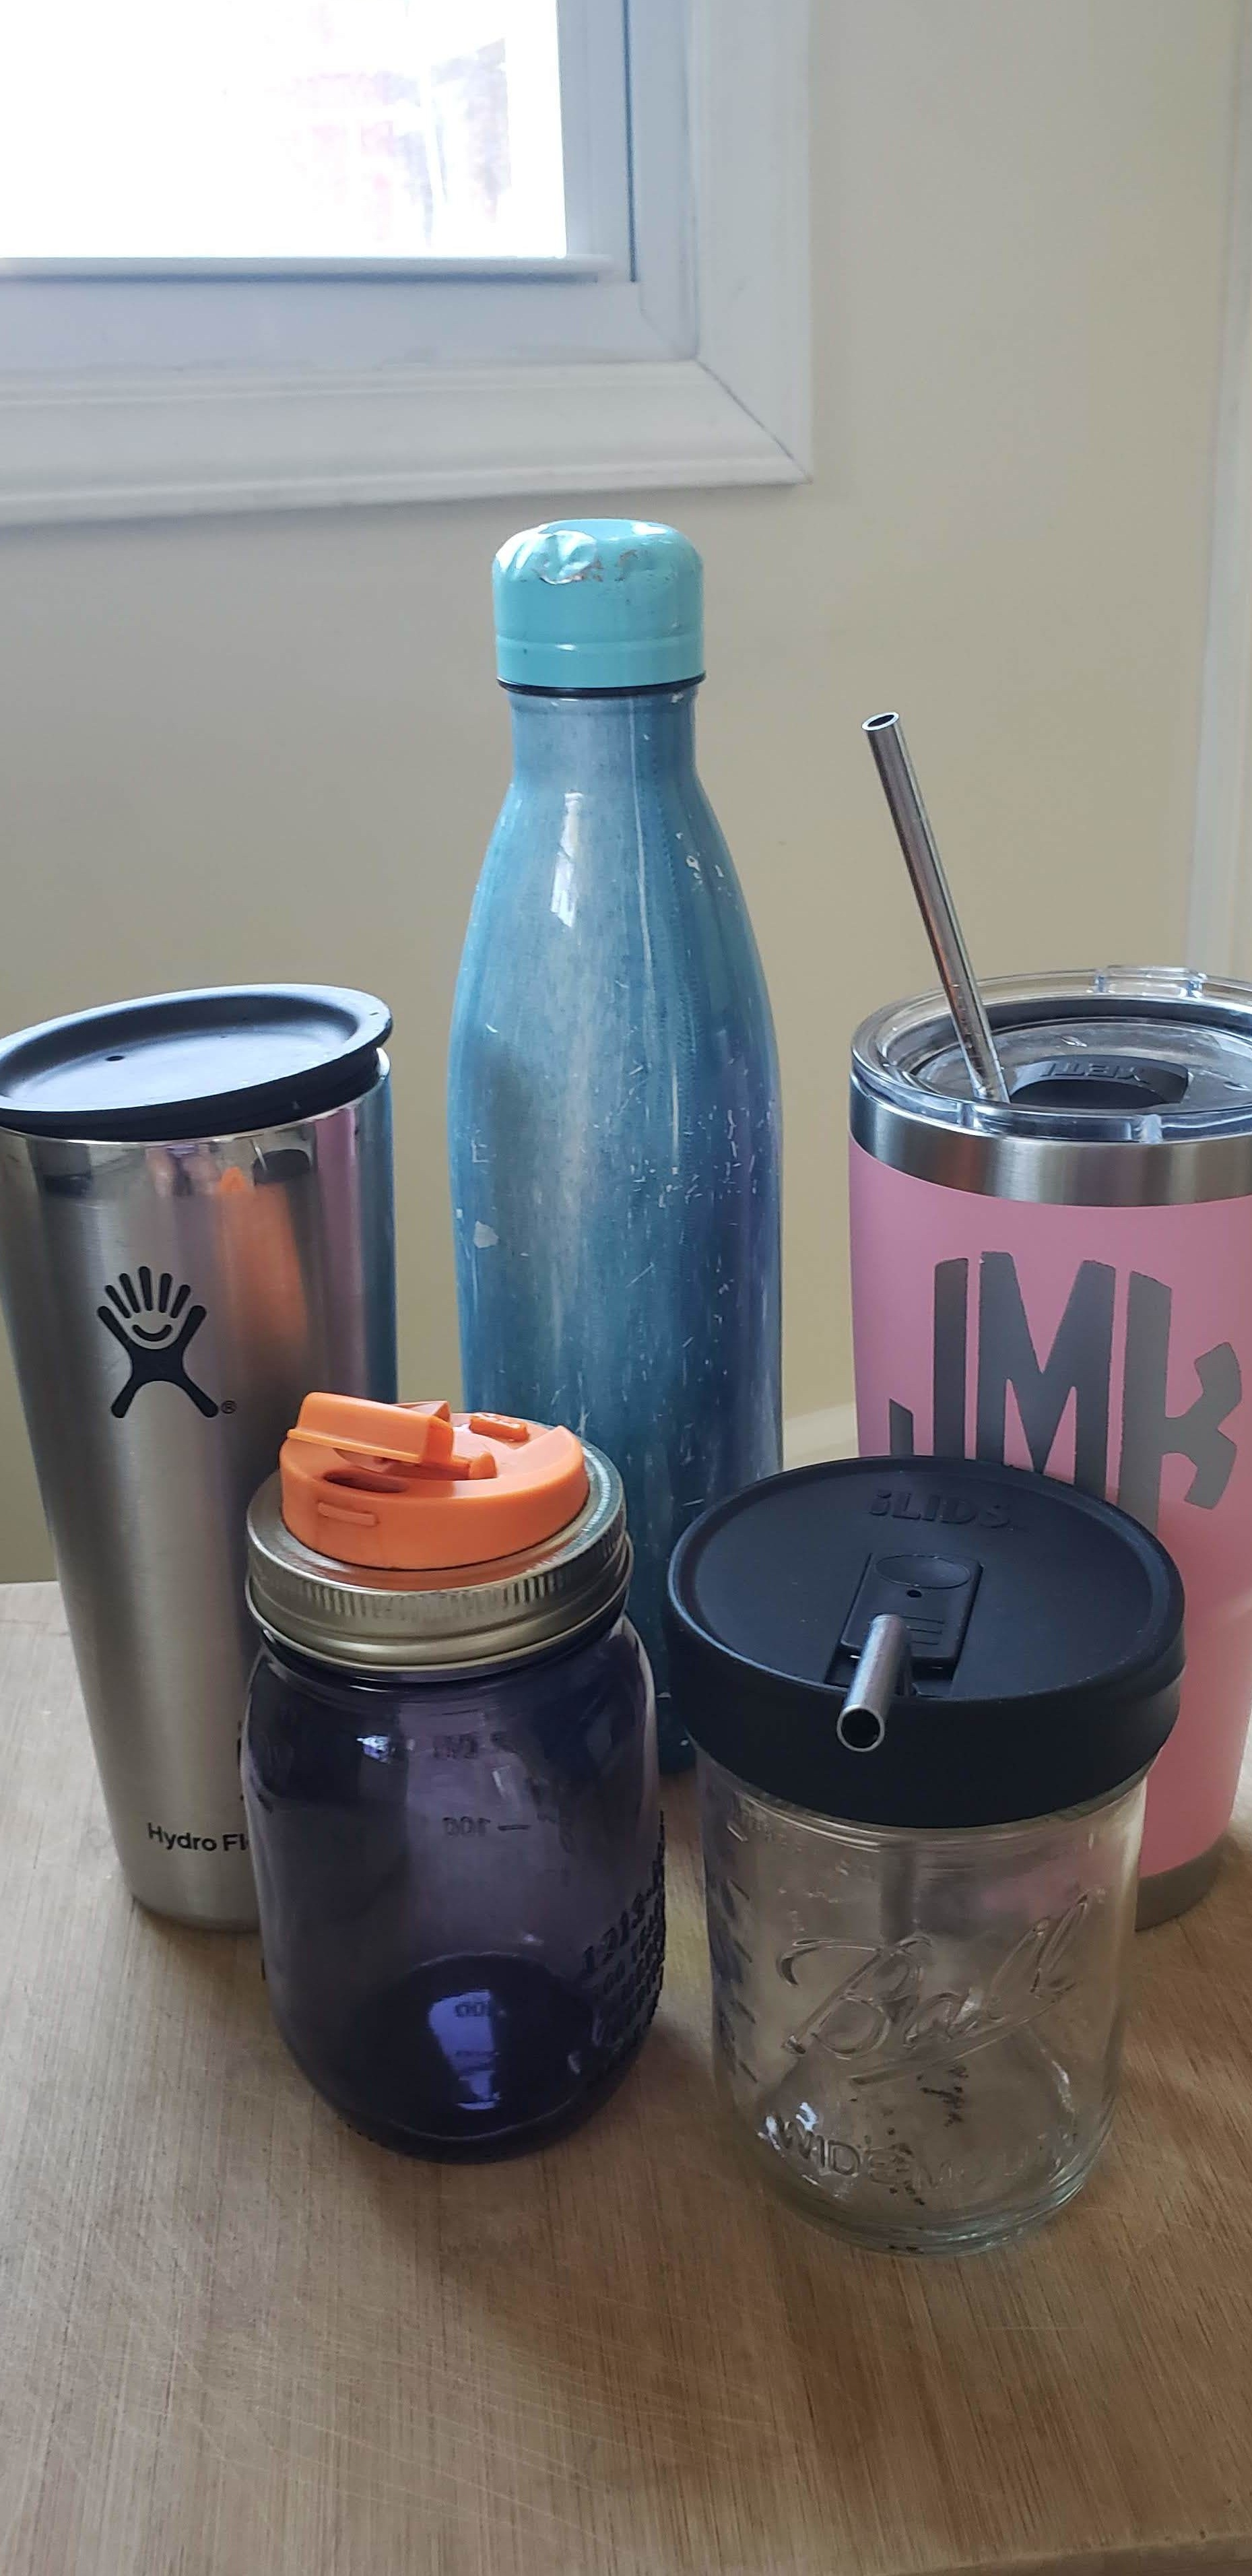 Some of my favorite reusable cups, jars, lids and straws.